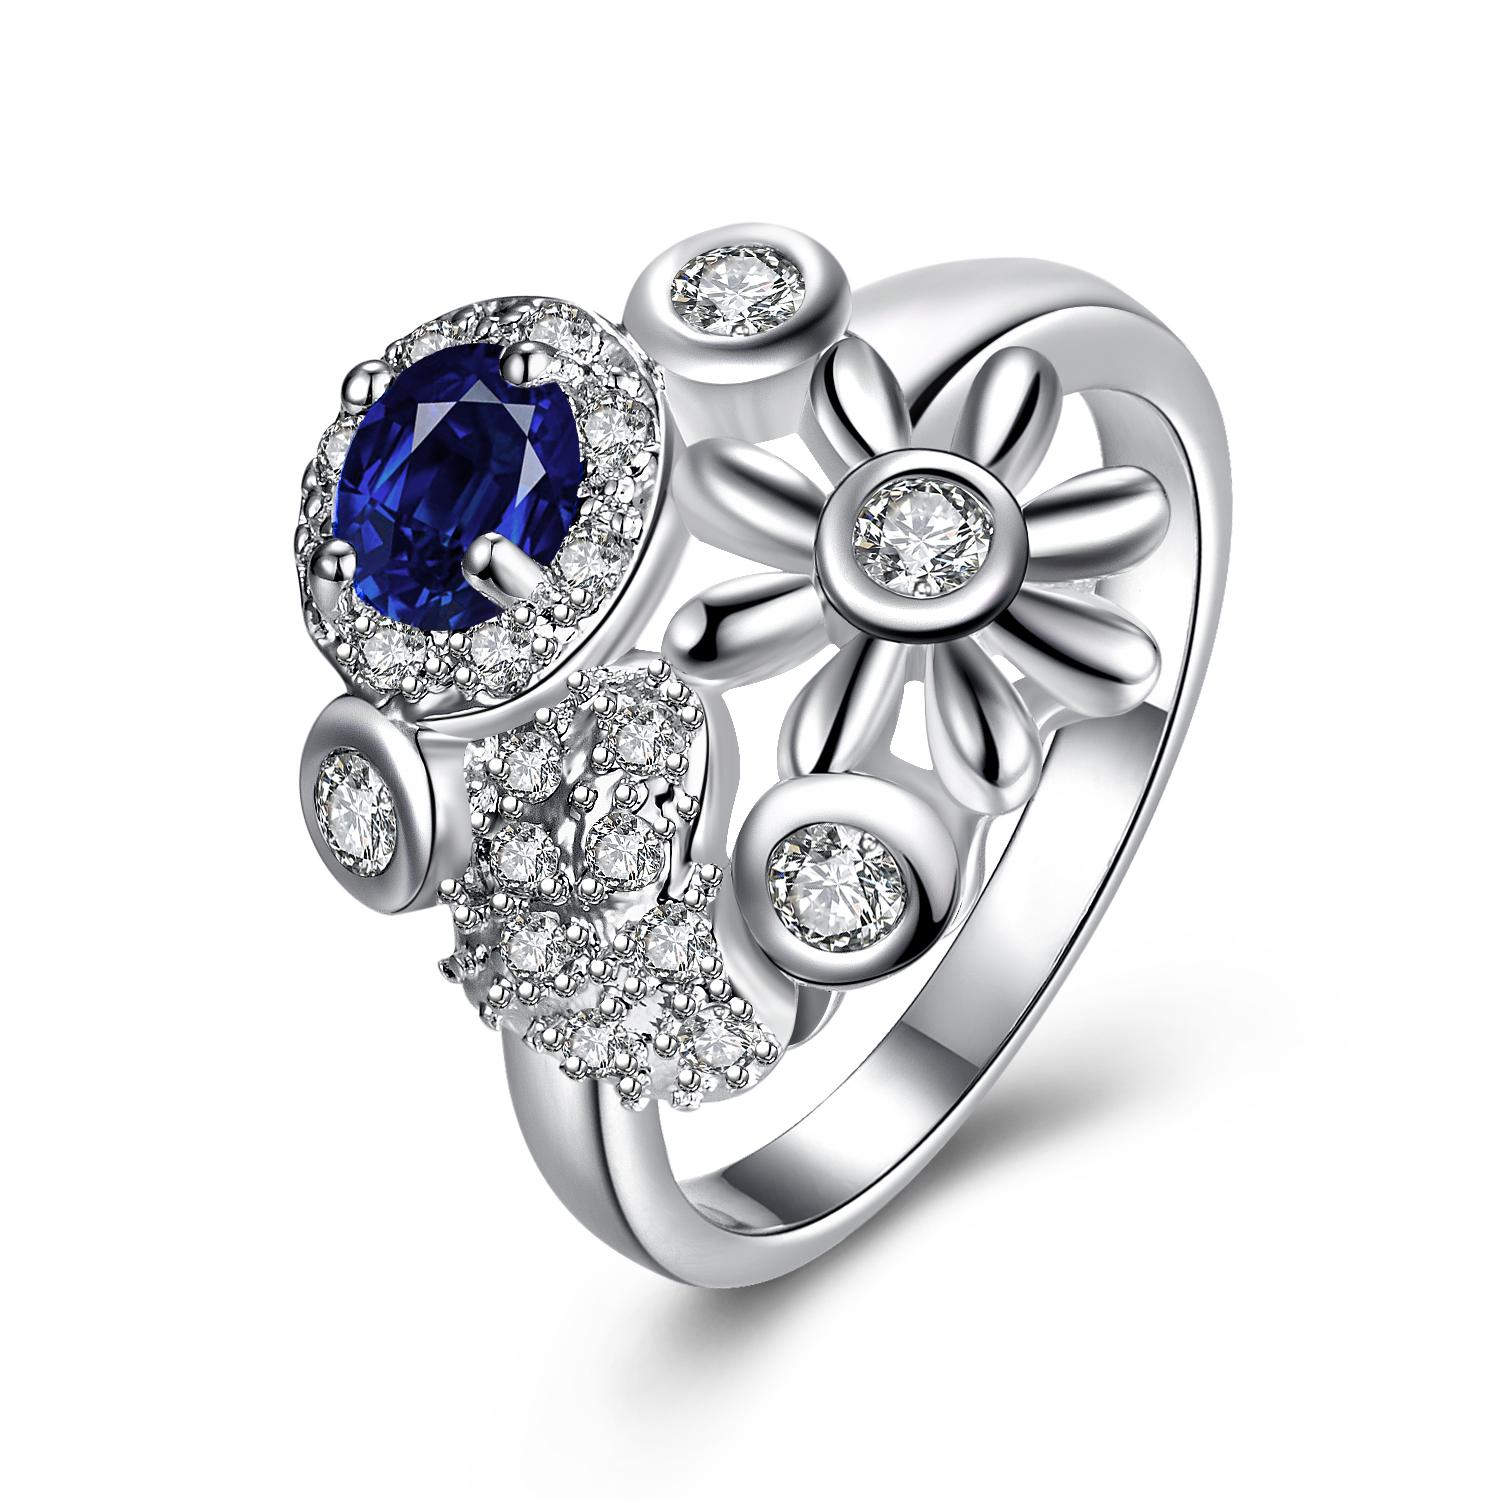 Vienna Jewelry Mock Sapphire Multi-Charms Inserted Petite Ring Size 8